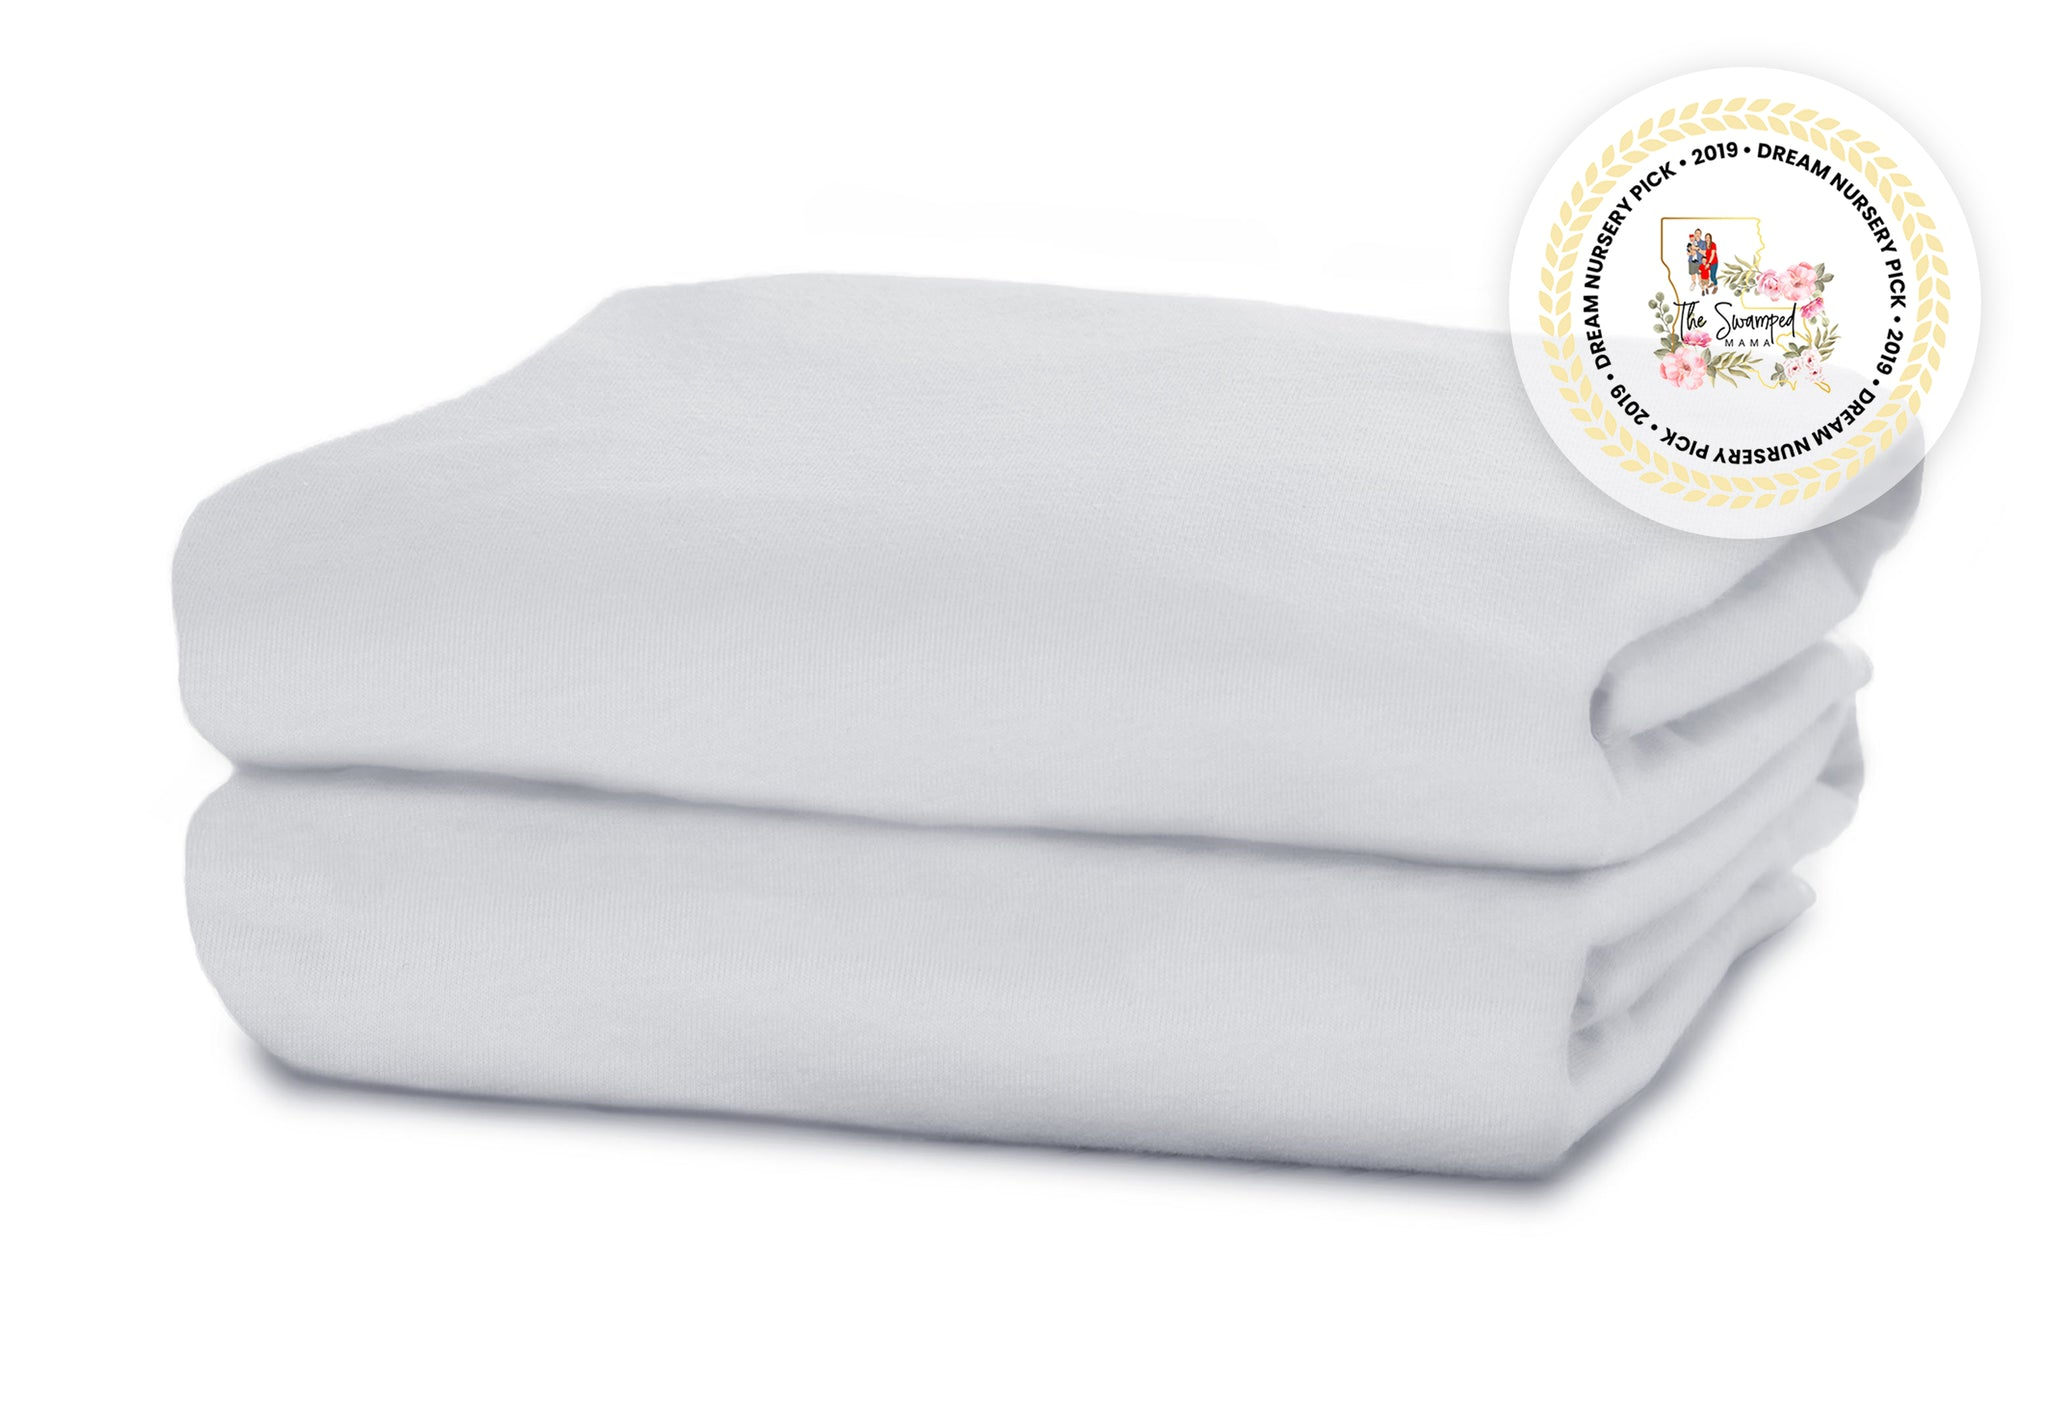 Delta Children White (100) Fitted Crib Sheet Set – 2 Pack Folded View